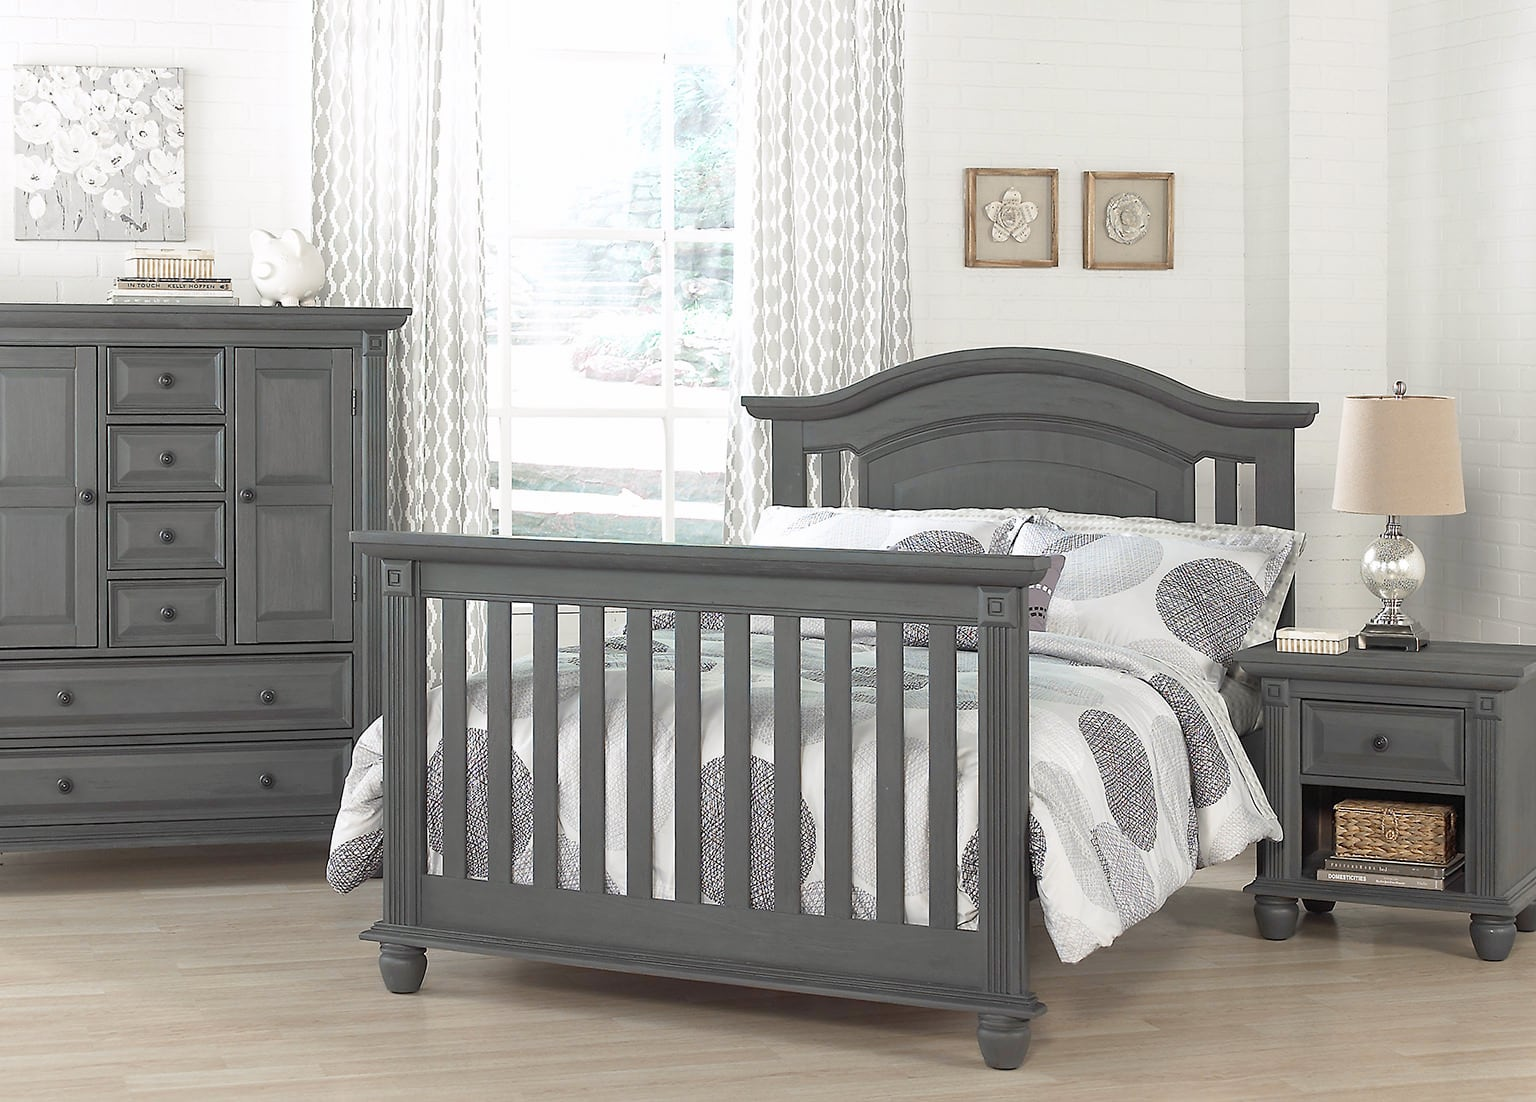 London Lane Arctic Gray Fullbed